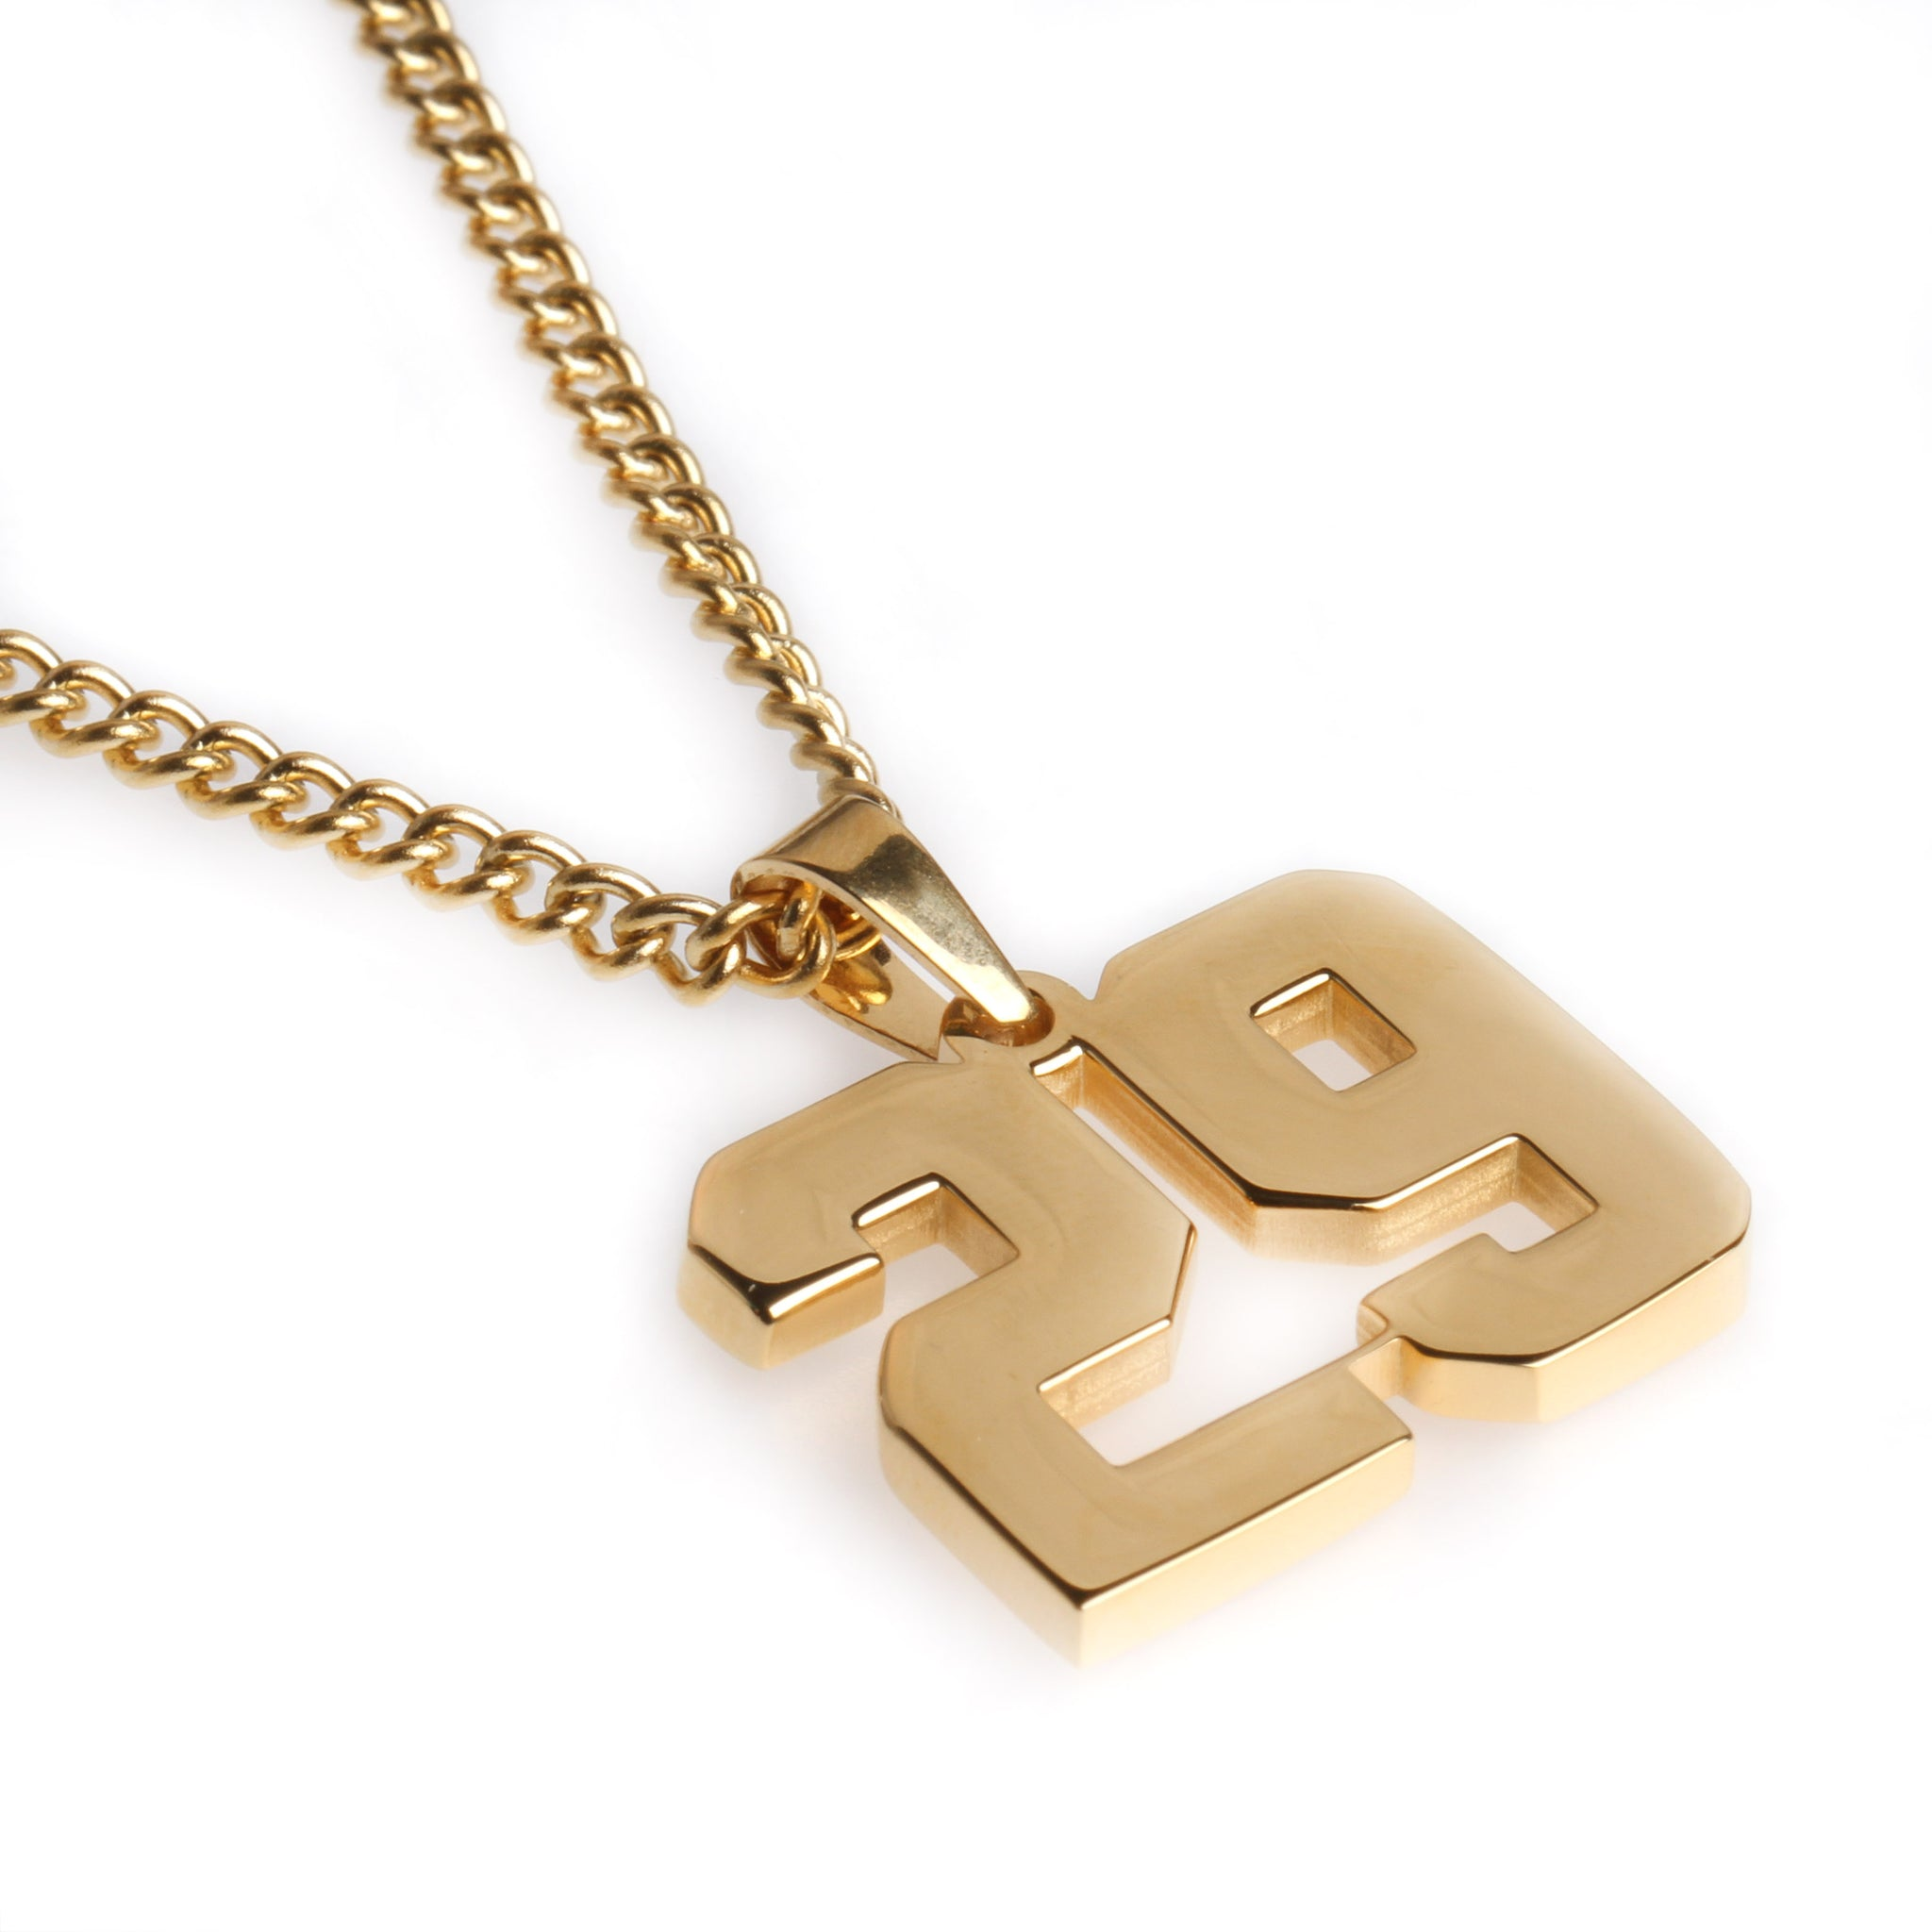 gold vintage chanel products rev pendant yellow necklace chain clipped the adore img